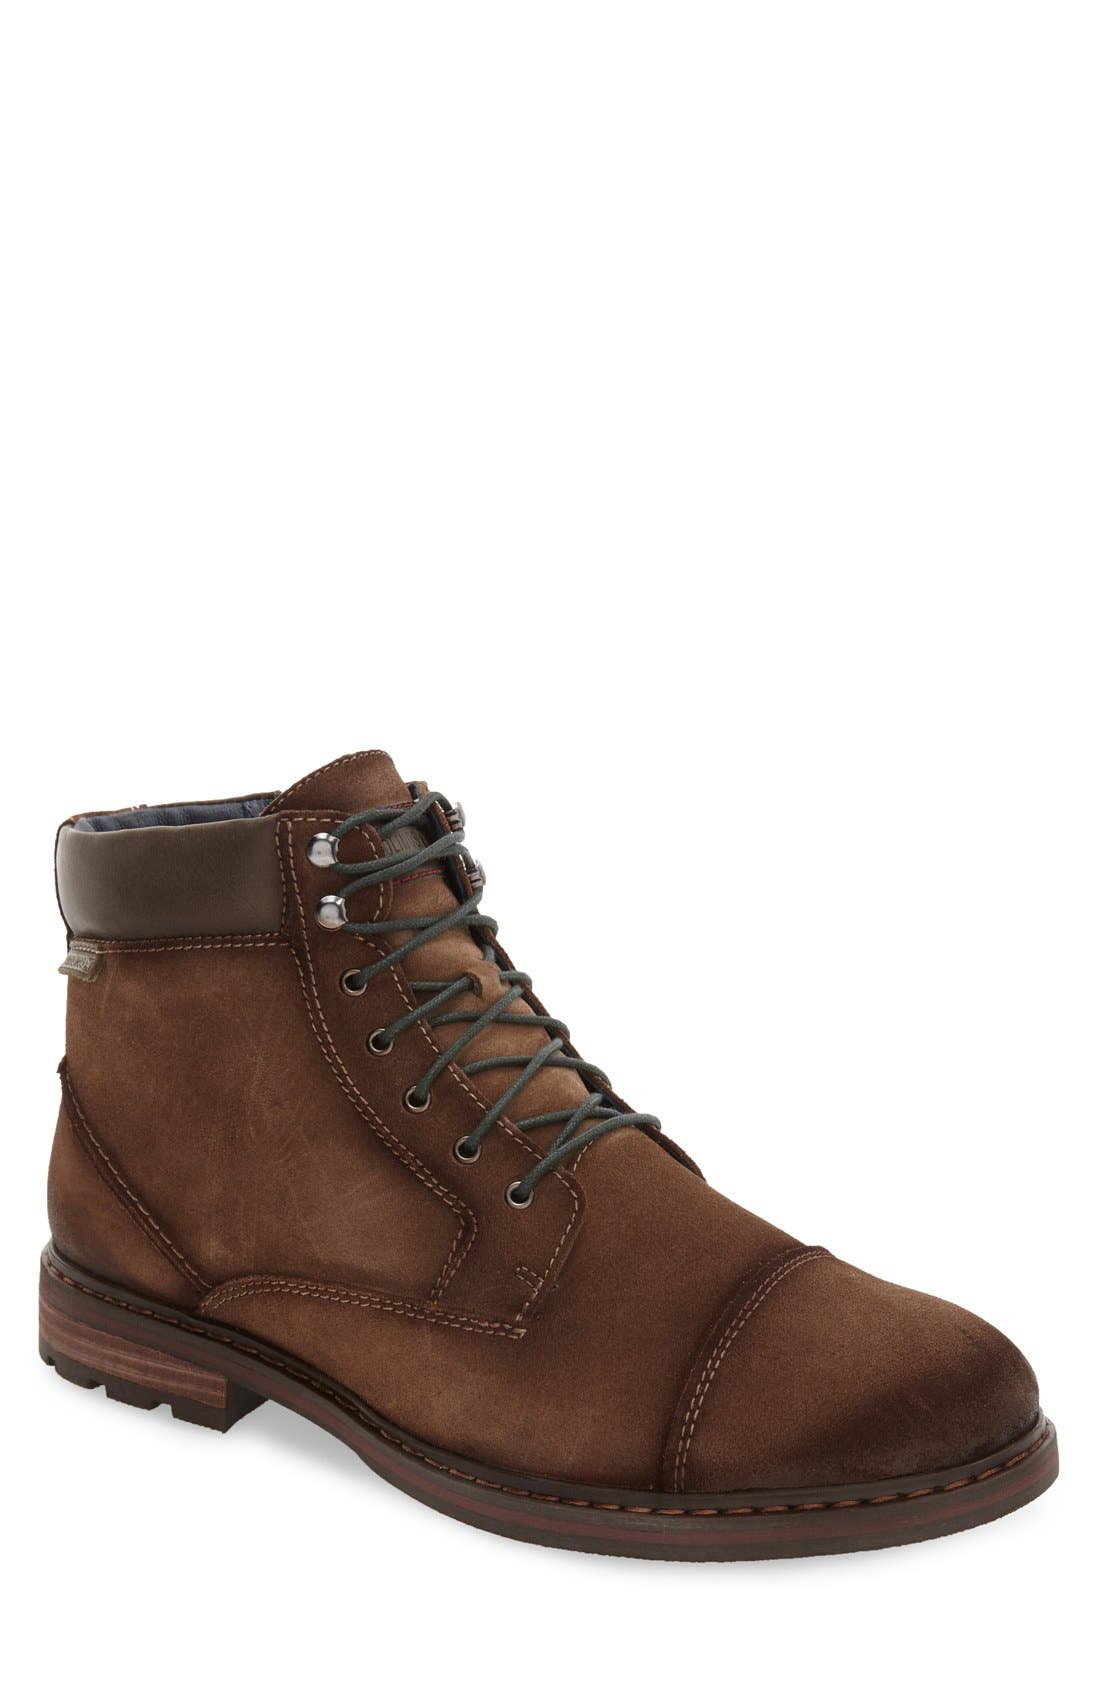 'Cacers' Lace-Up Zip Boot,                             Main thumbnail 1, color,                             Brown Leather